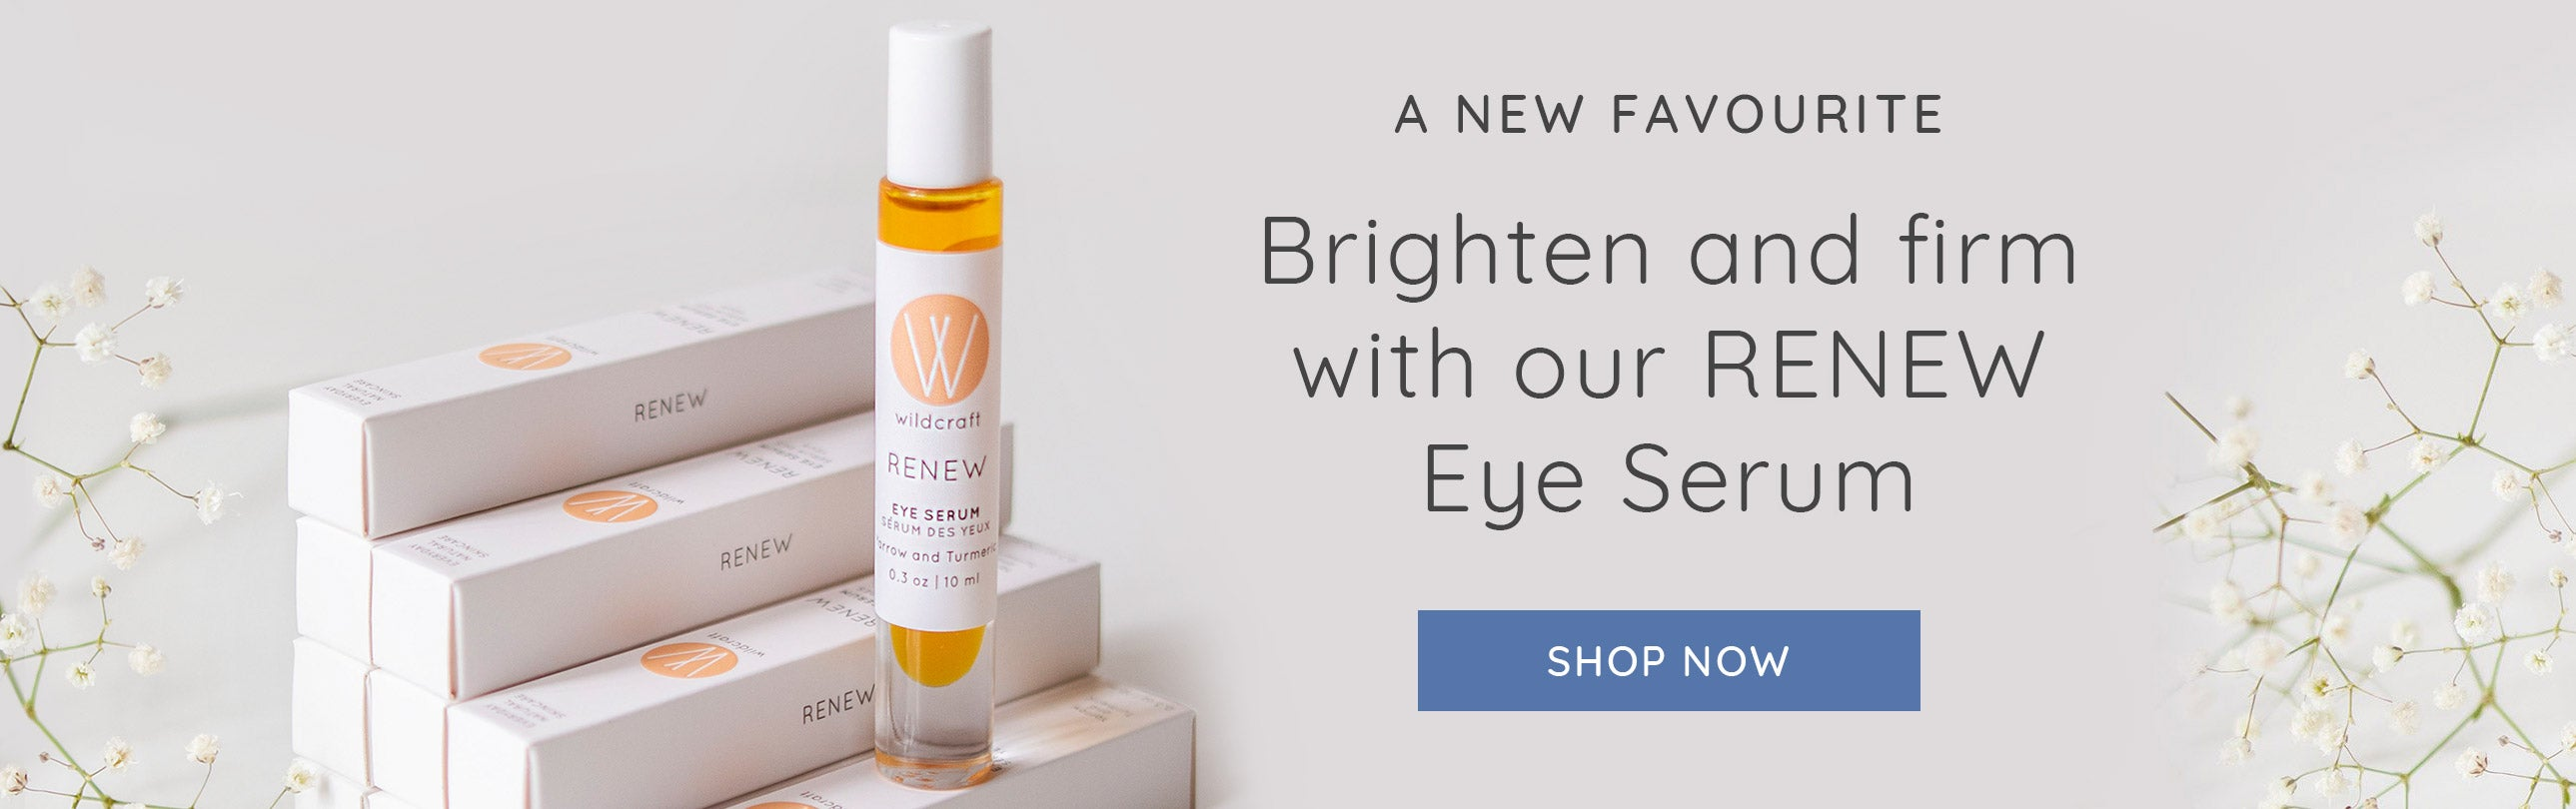 A new favourite: RENEW Eye Serum